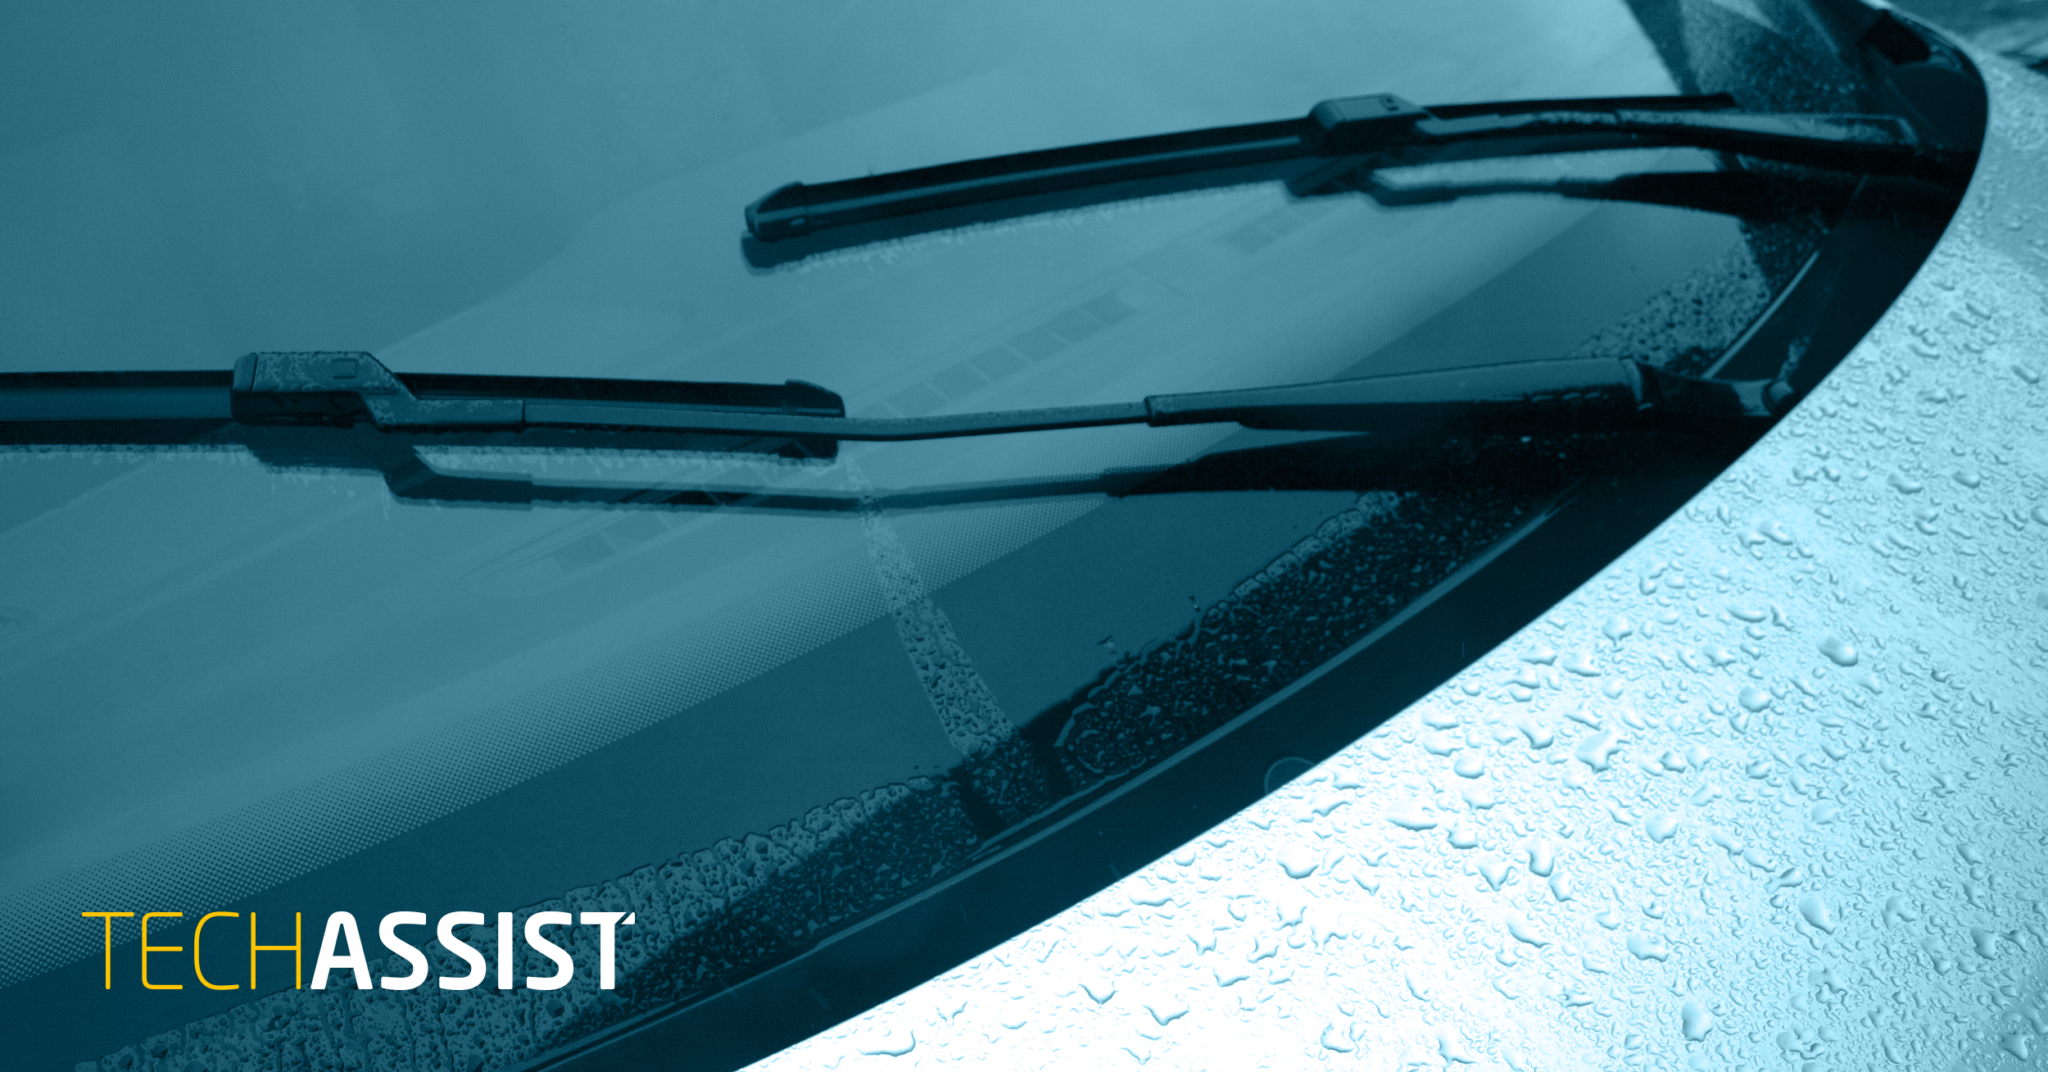 Techassist Wiper Blade Troubleshooting Guide Elta Automotive